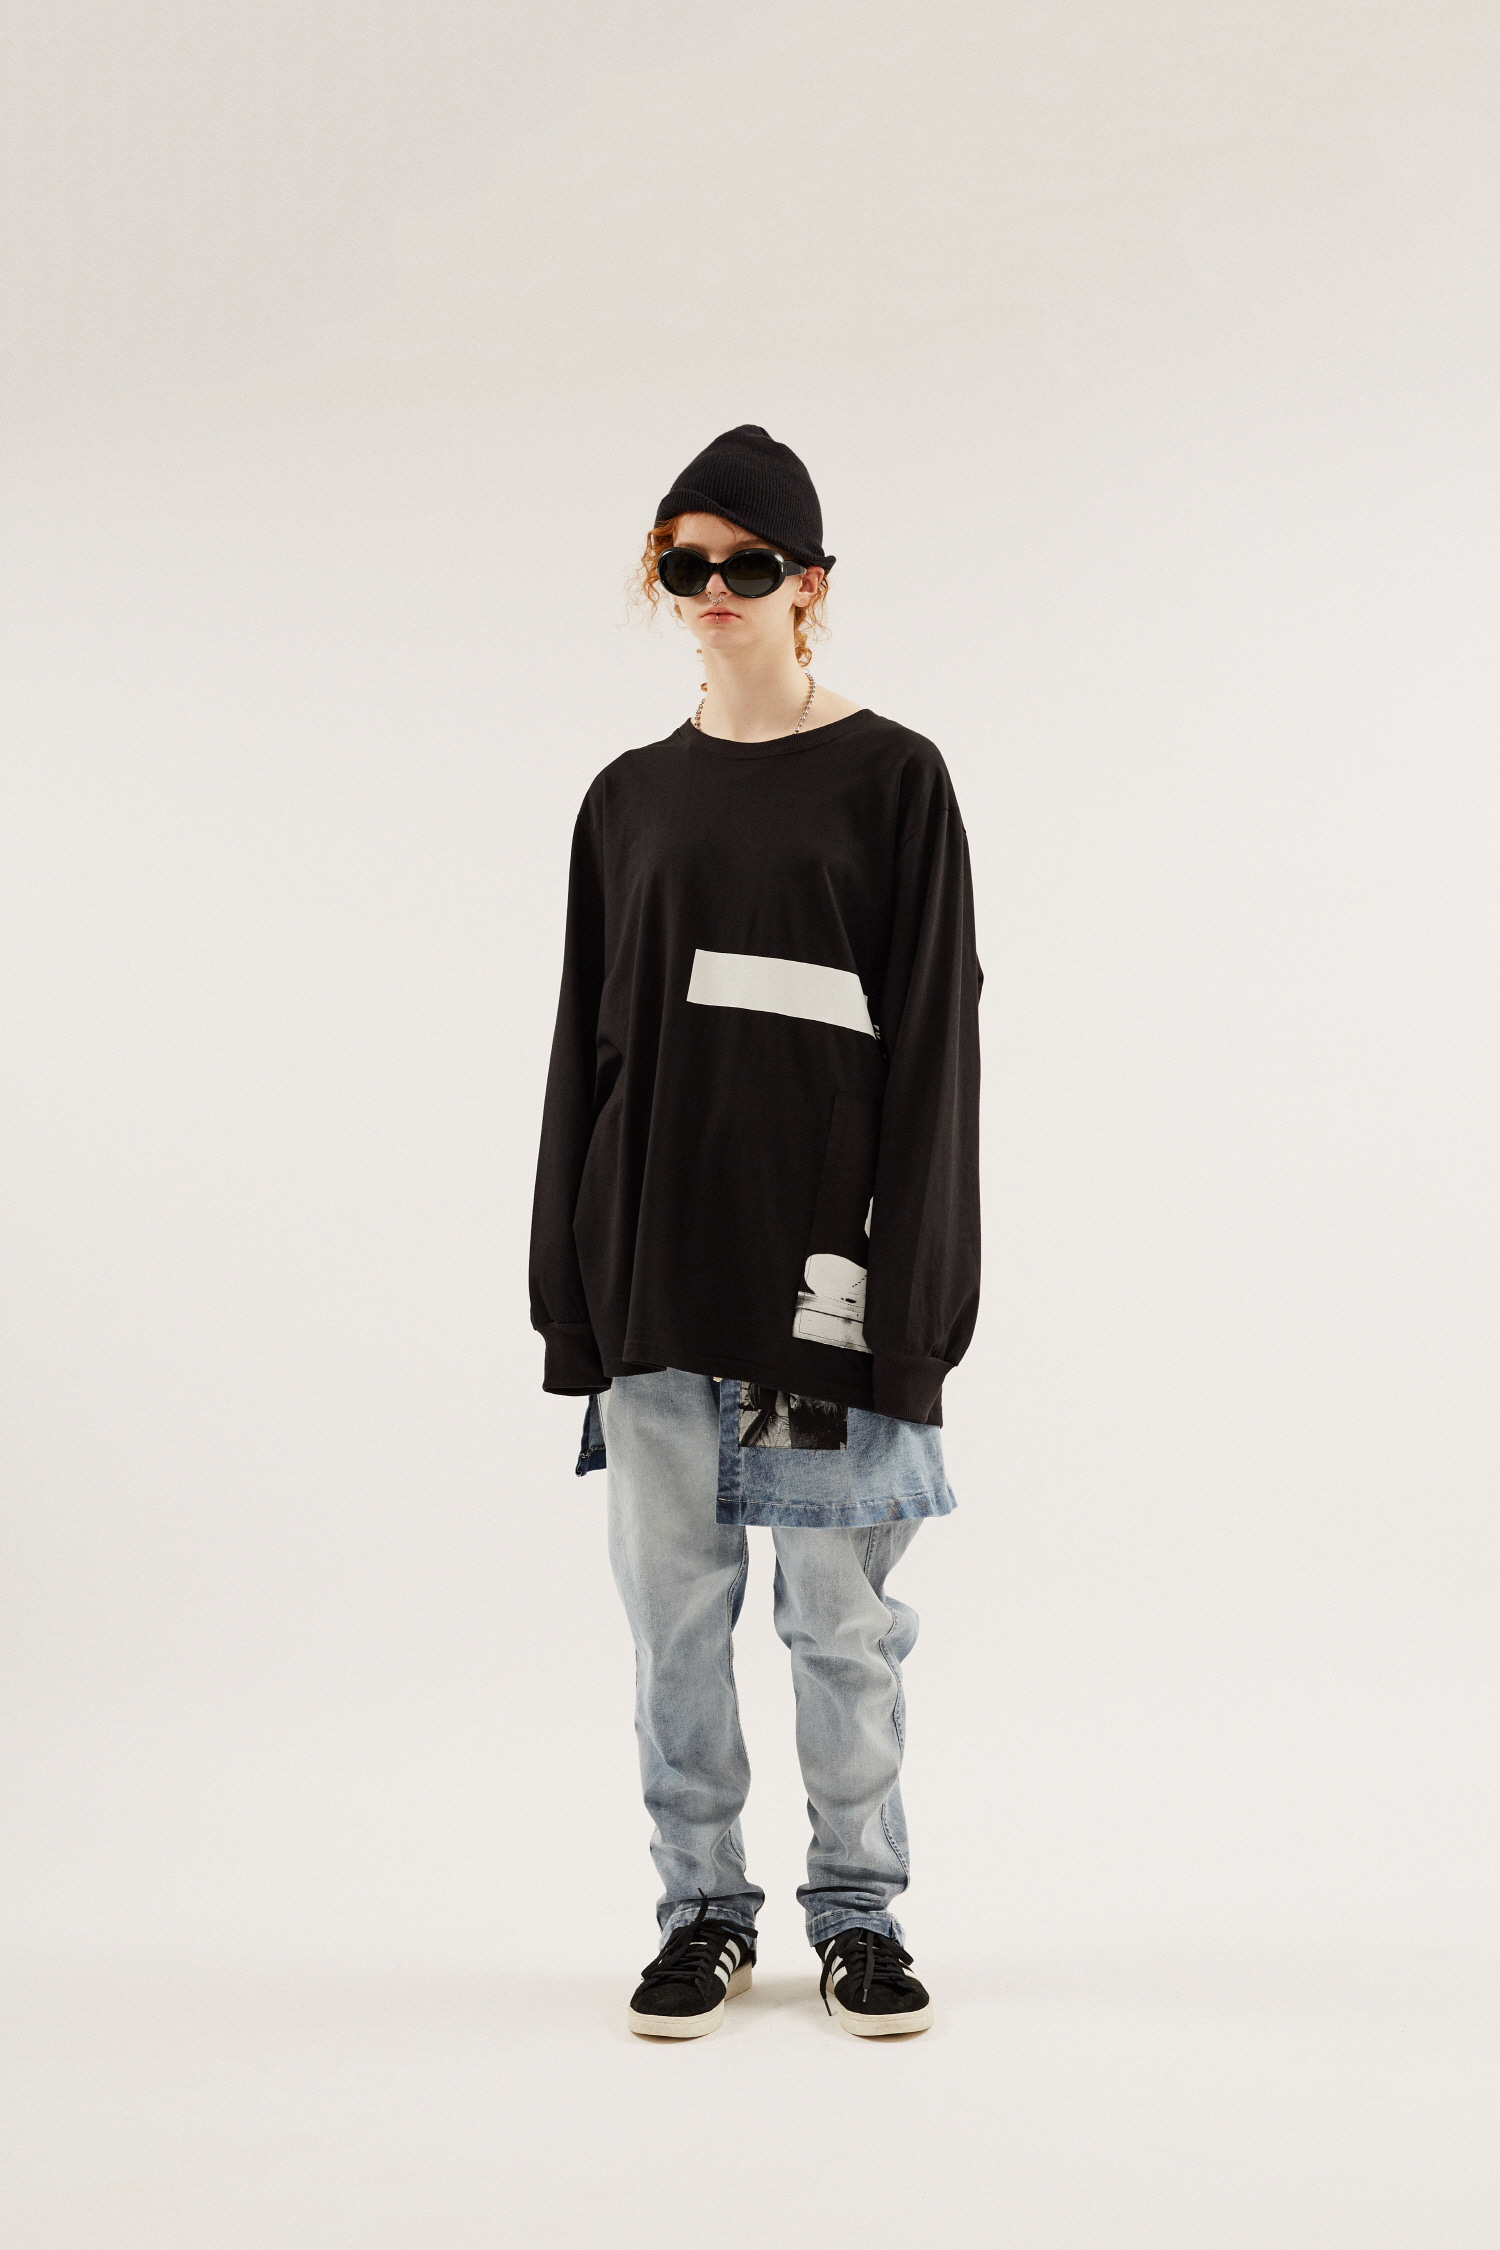 Collection_2020 S/S 1st_16